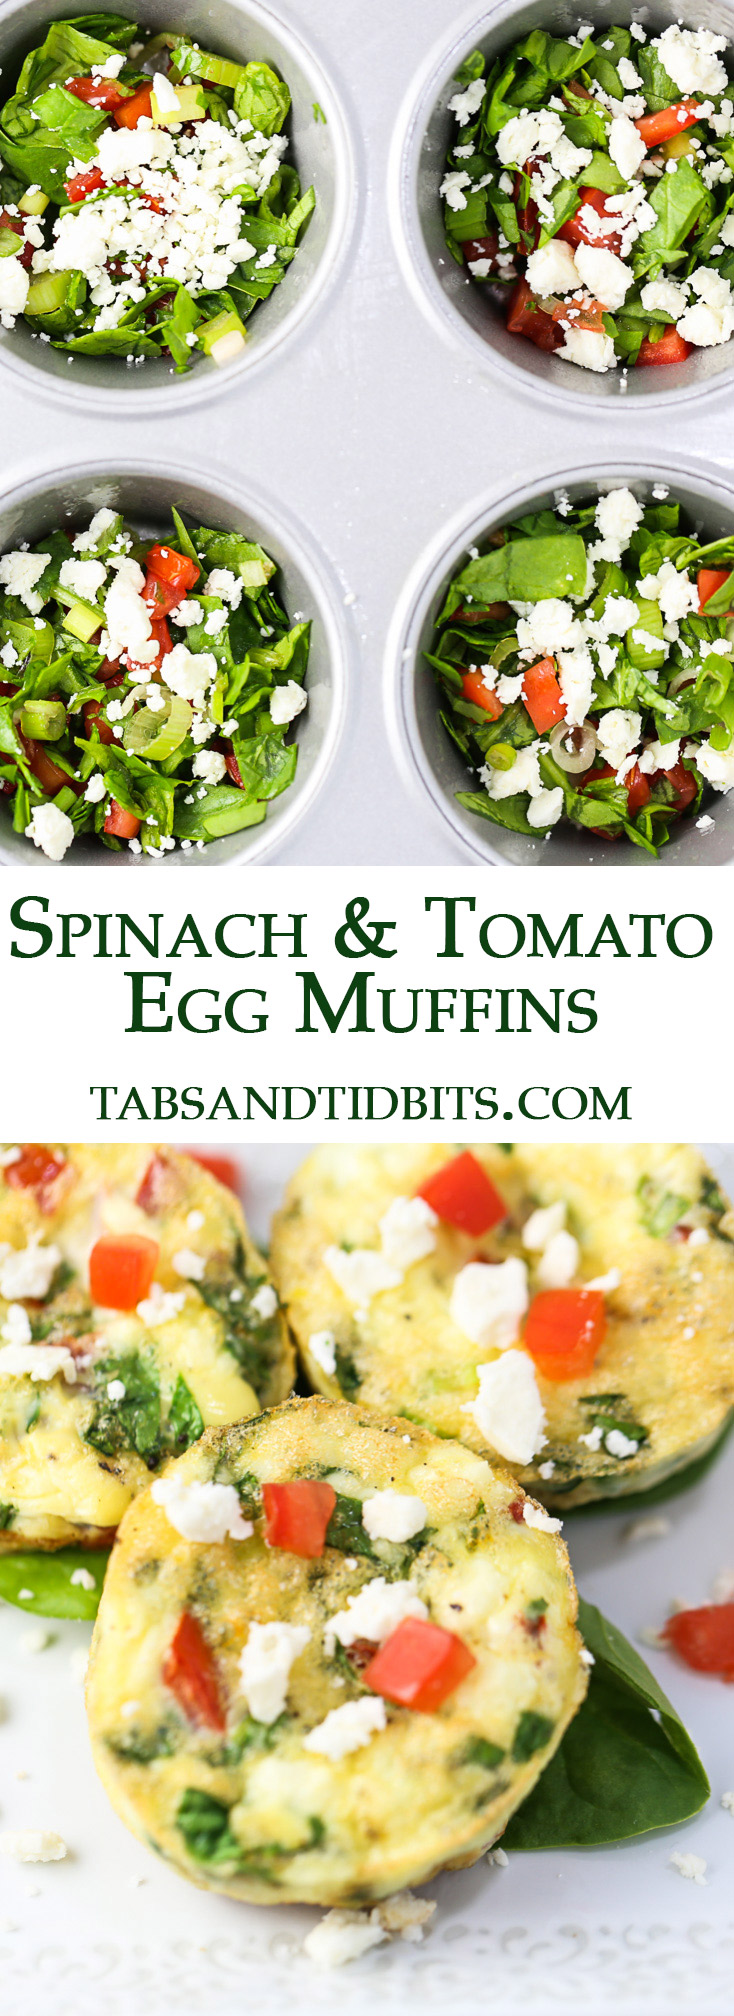 The Spinach and Tomato Egg Muffins are a healthy protein-packed breakfast to take with you on the go!